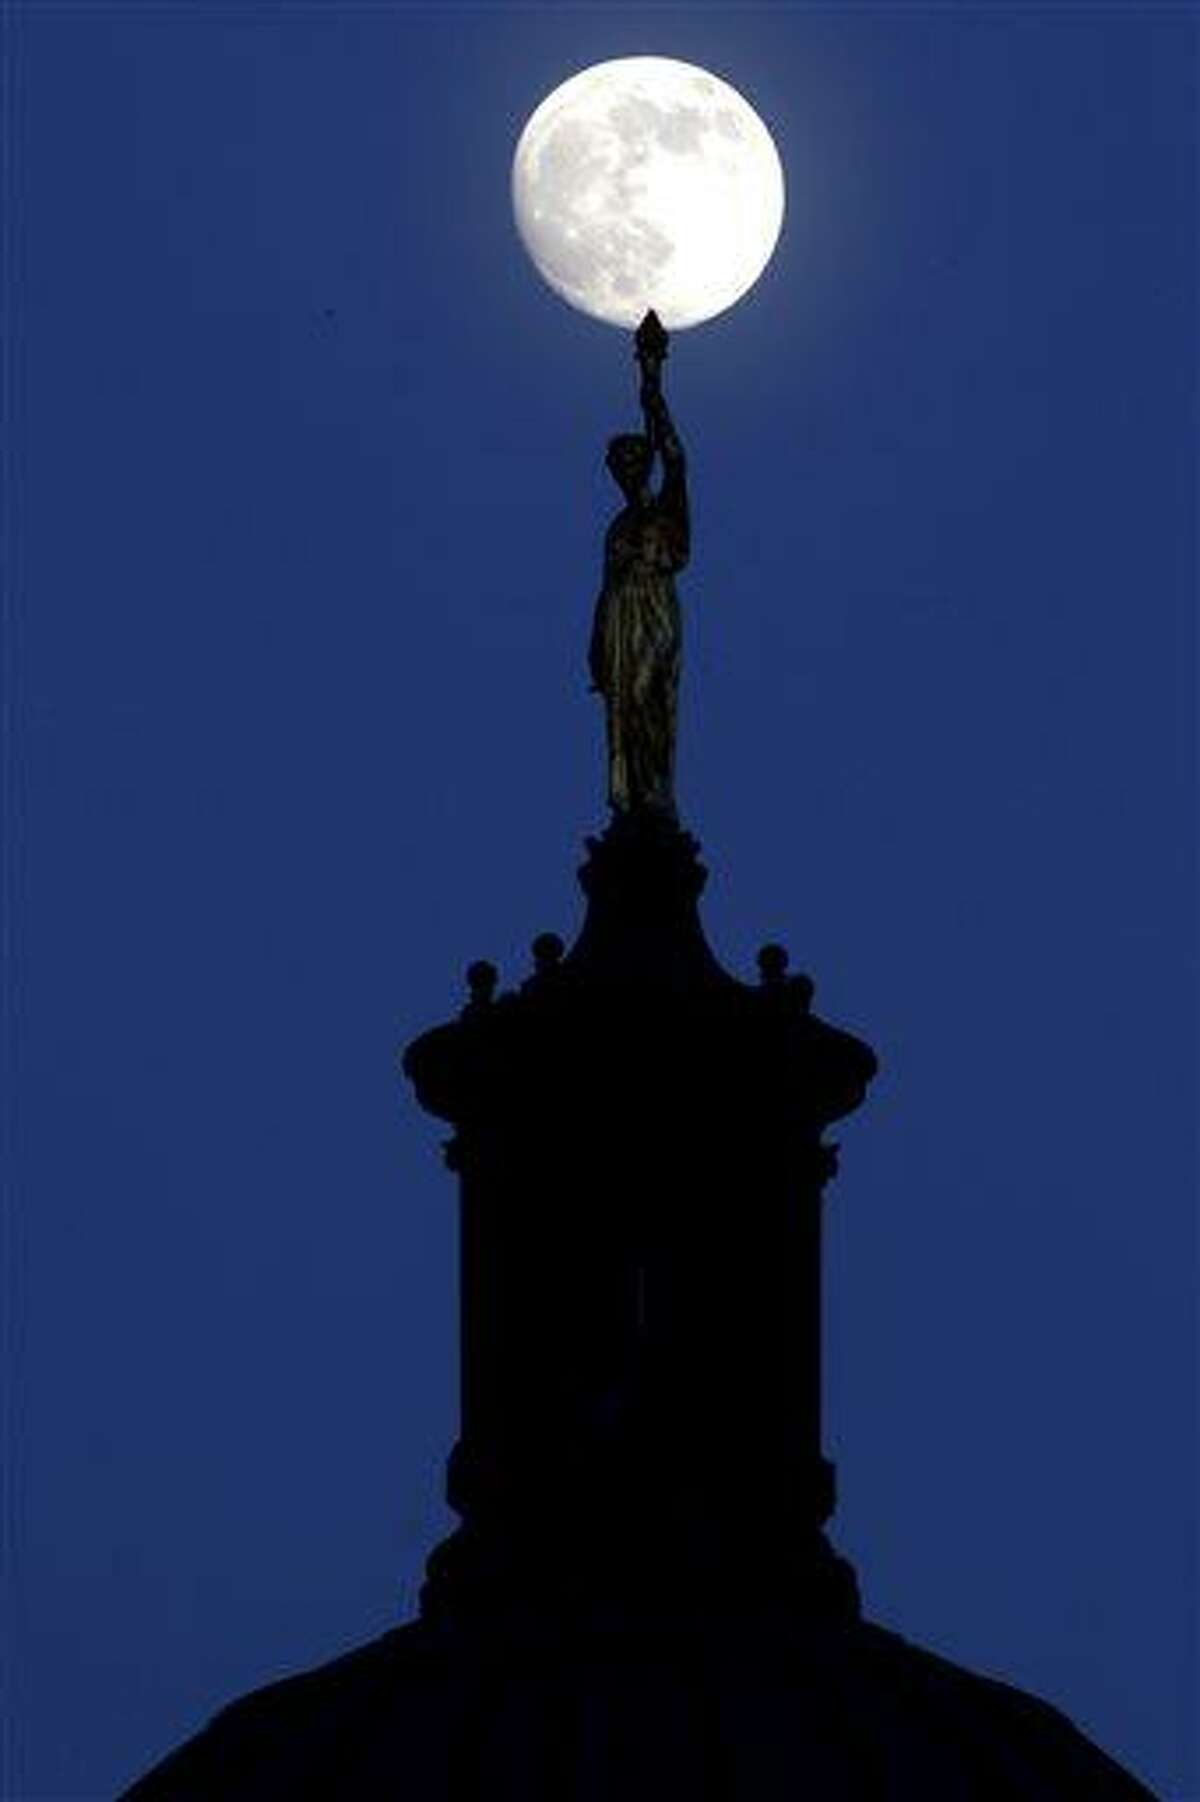 """The moon in its waxing gibbous stage shines over a statue entitled """"Enlightenment Giving Power"""" by John Gelert, which sits at the top of the dome of the Bergen County Courthouse in Hackensack, N.J., Friday, June 21, 2013. The moon, which will reach its full stage on Sunday, is expected to be 13.5 percent closer to earth during a phenomenon known as supermoon. (AP Photo/Julio Cortez)"""